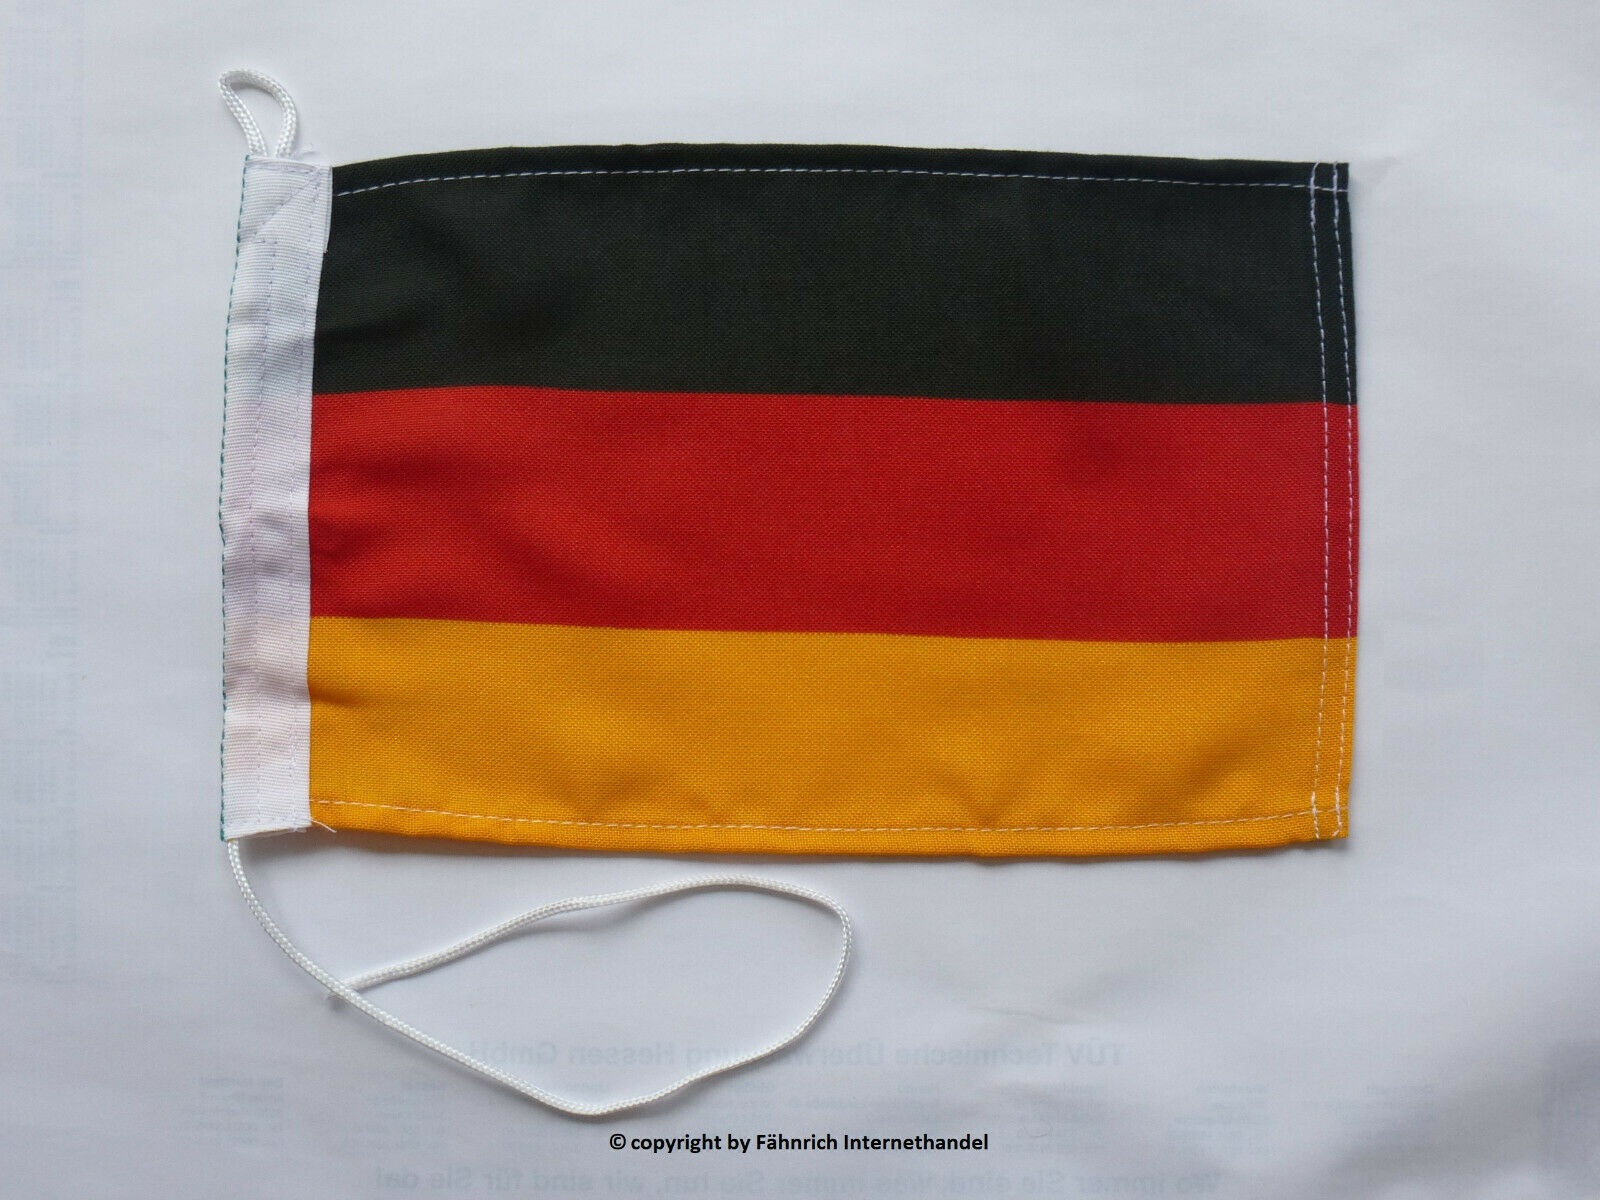 FLAGGE FAHNE BOOT SCHIFF BOOTSFLAGGE DEUTSCHLAND BRD BOOTSFAHNE 20 x 30 robust